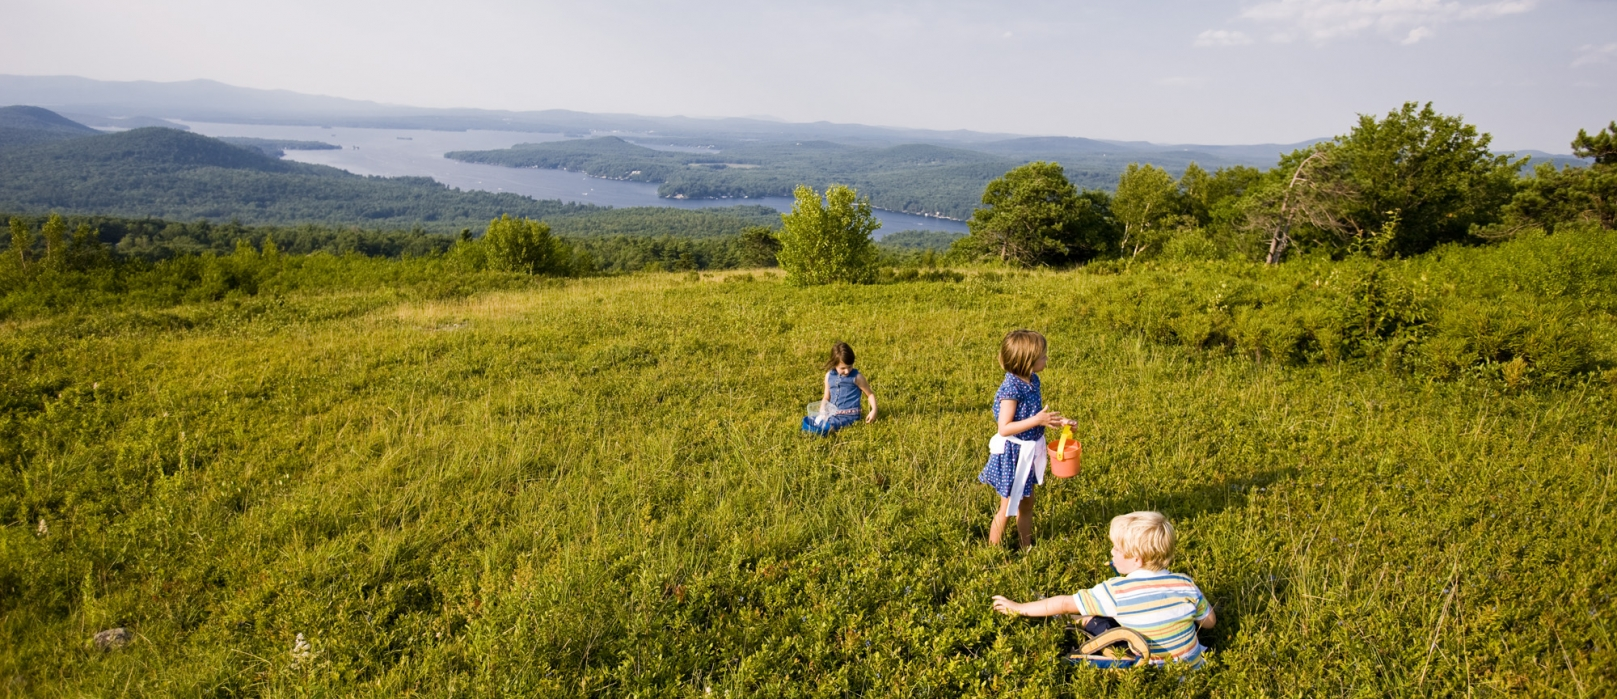 Three children are picking blueberries at the summit of Pine Mountain and views of the Belknap Range.